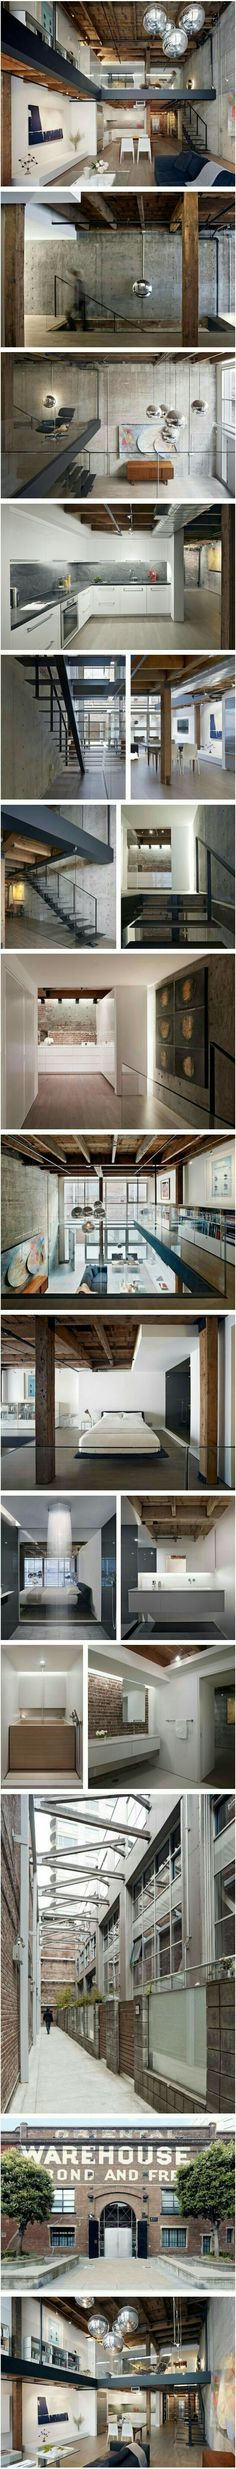 Beautiful Loft Design! Like Downtown Memphis